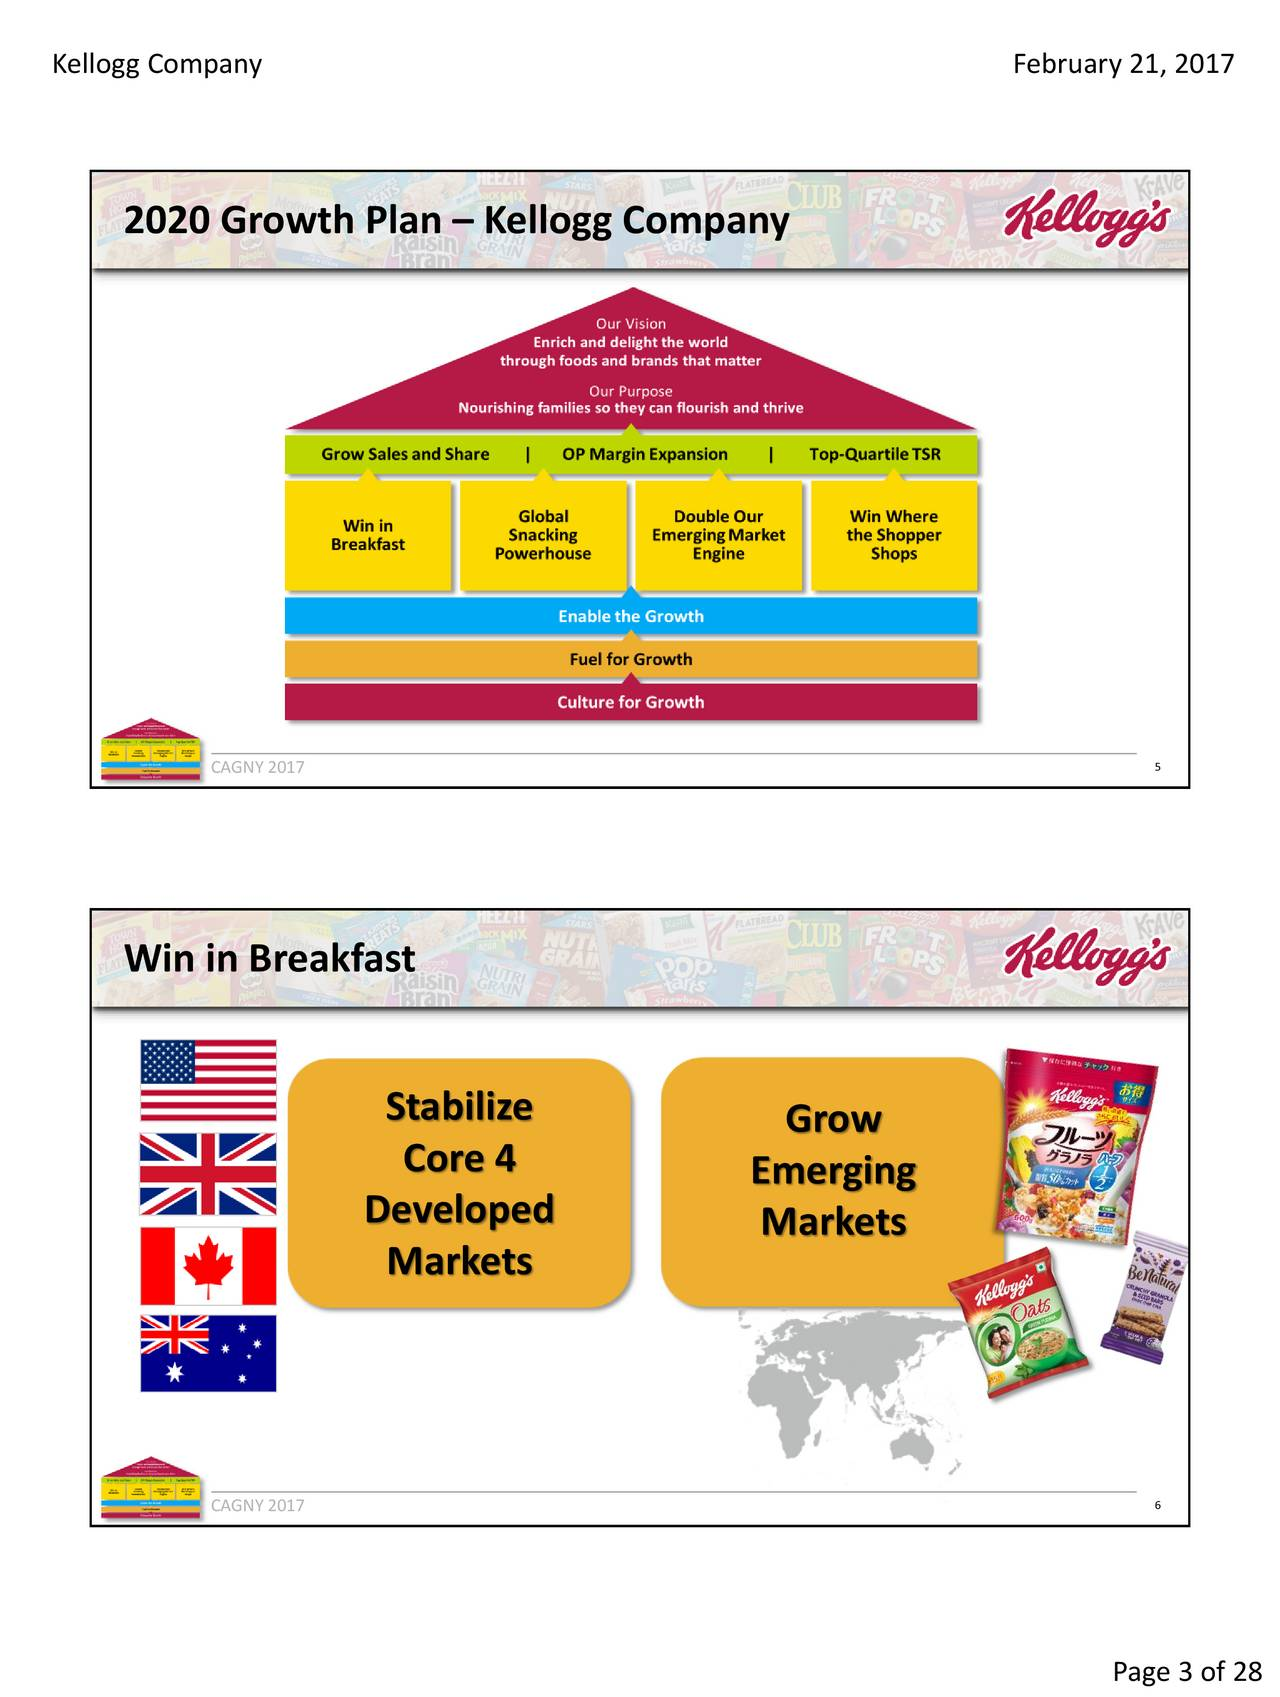 kelloggs growth strategy in india - denis avronsart, managing director, kellogg indiaproducts offered in india corn flakes, wheat flakes, basmati rice flakesapril 1995, 25% decline in sales in comparison to last monthdespite offering good quality products and being supported by the technical, managerial and.